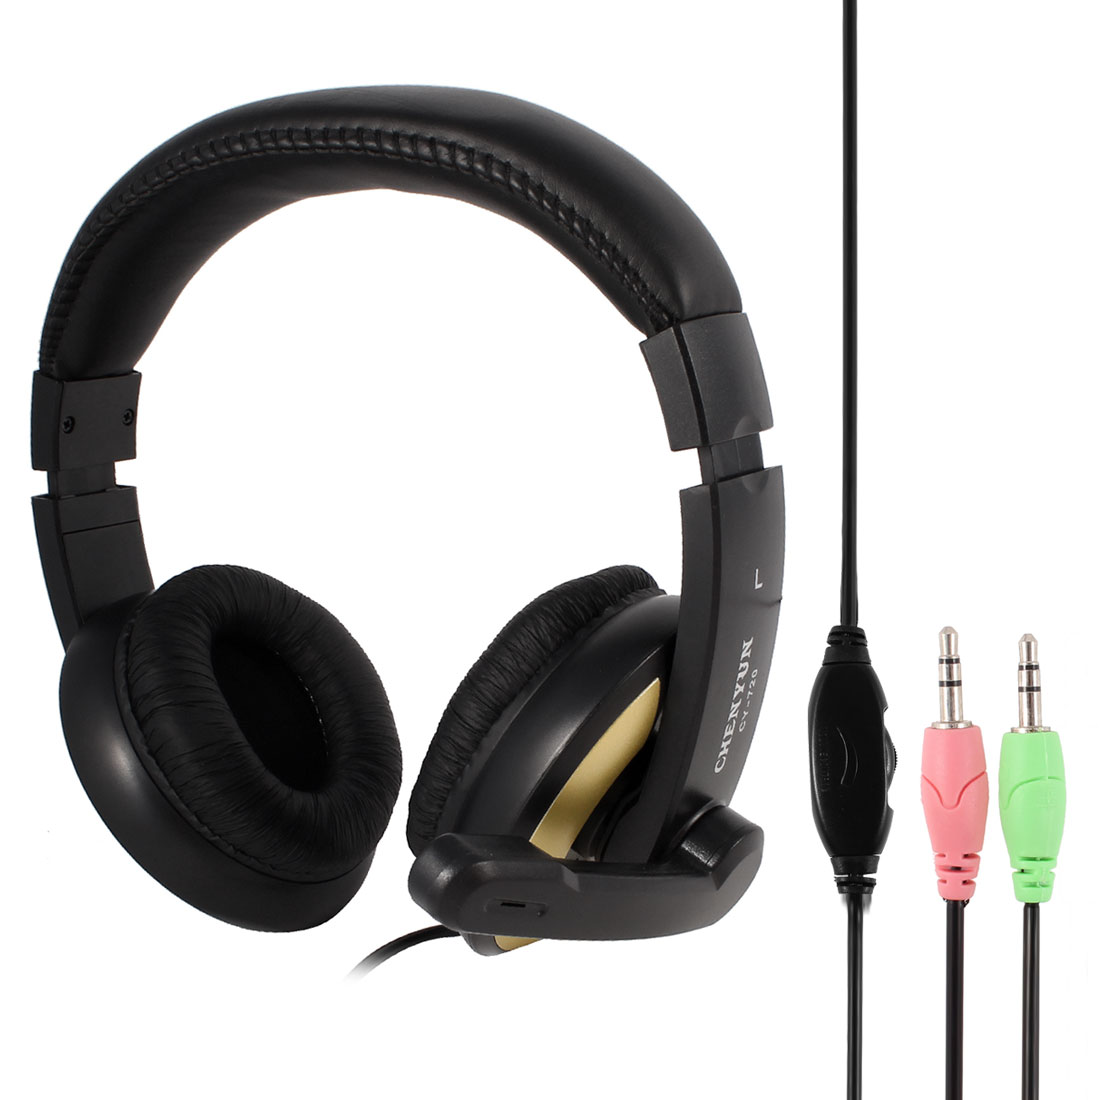 Adjustable Headband 3.5mm Connector Stereo Headphone Headset w Microphone for Laptop